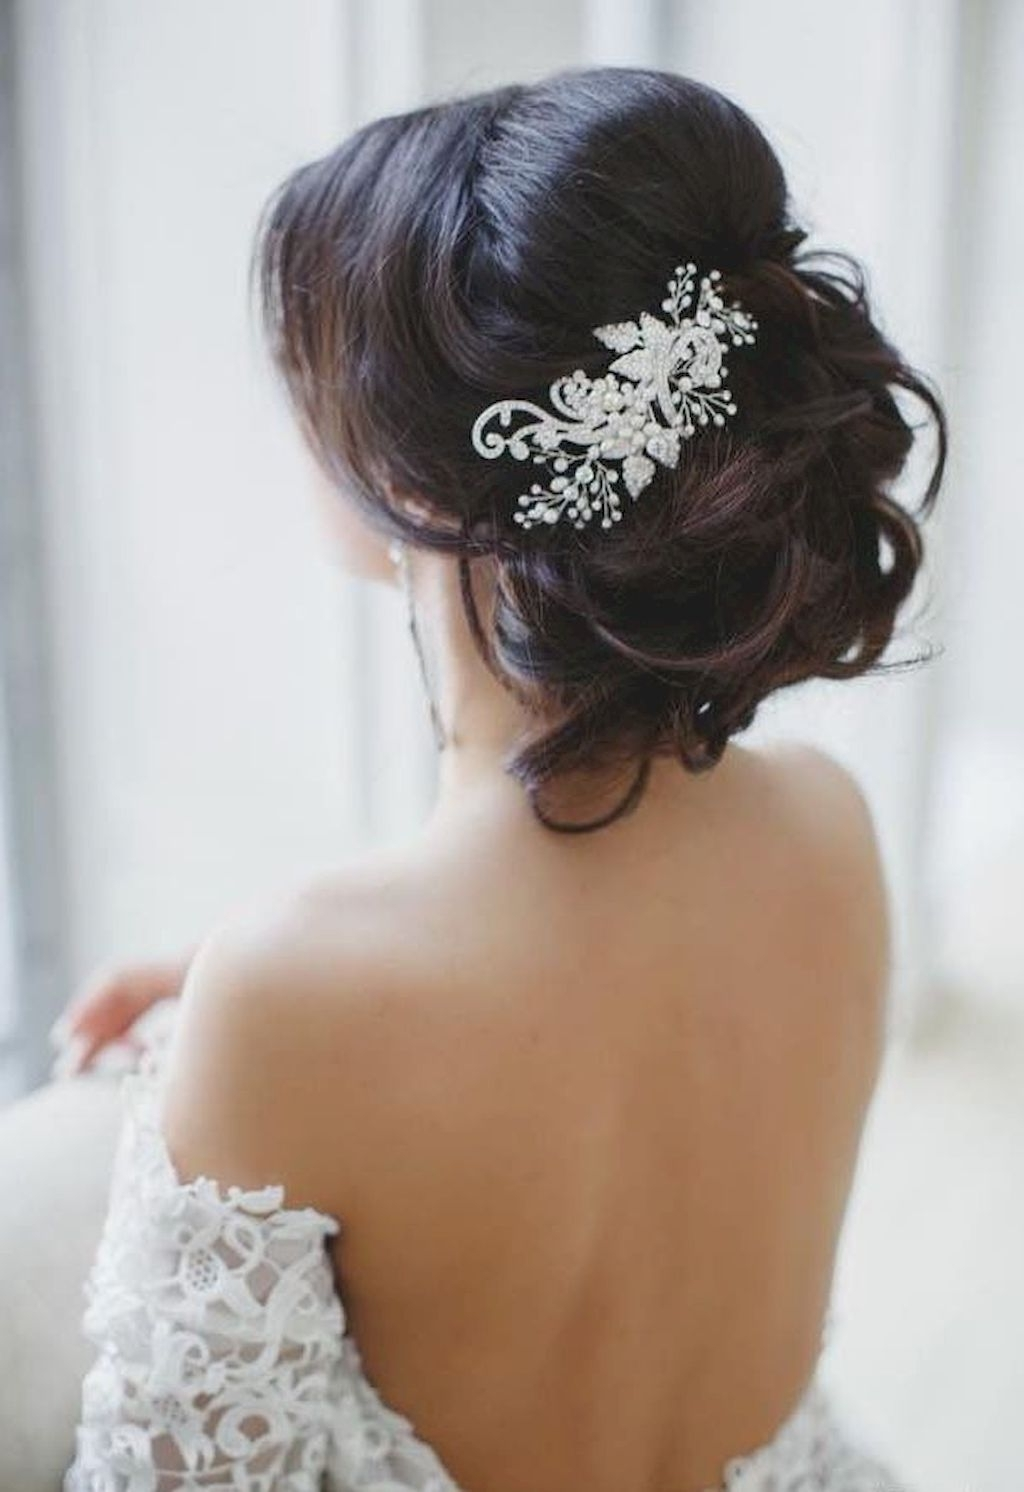 96 Bridal Wedding Hairstyles For Long Hair (View 3 of 15)